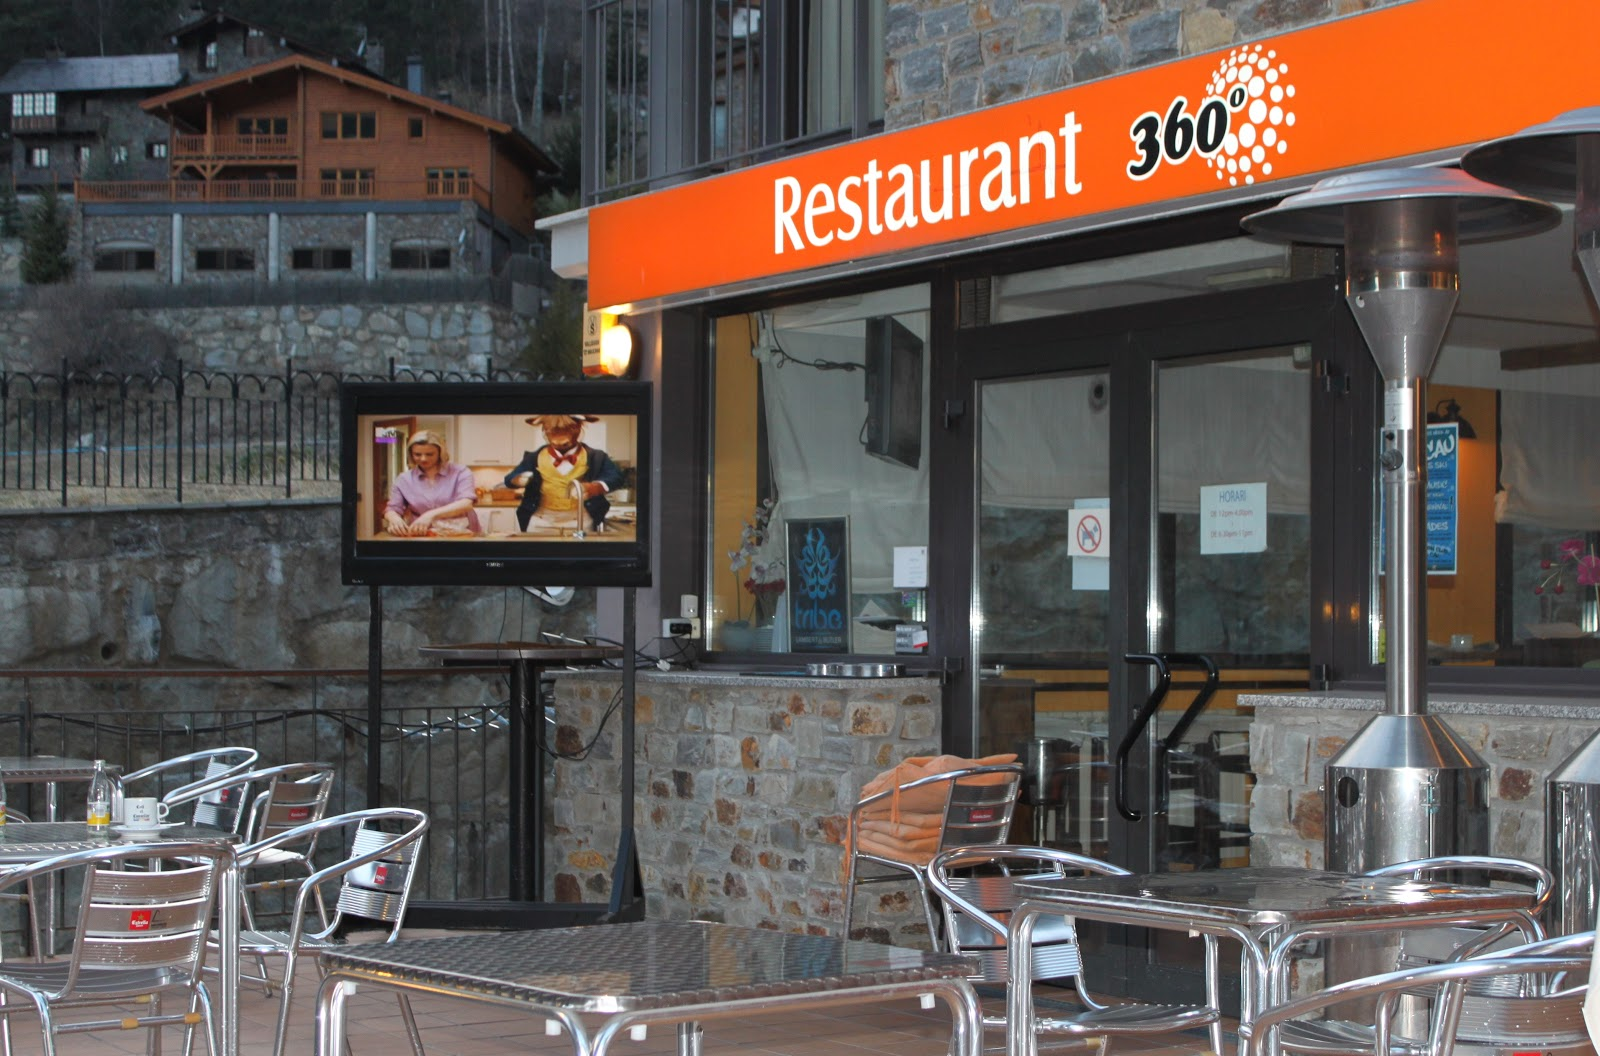 Nottingham food lovers restaurant 360 arinsal andorra for Aubergine cuisine nottingham